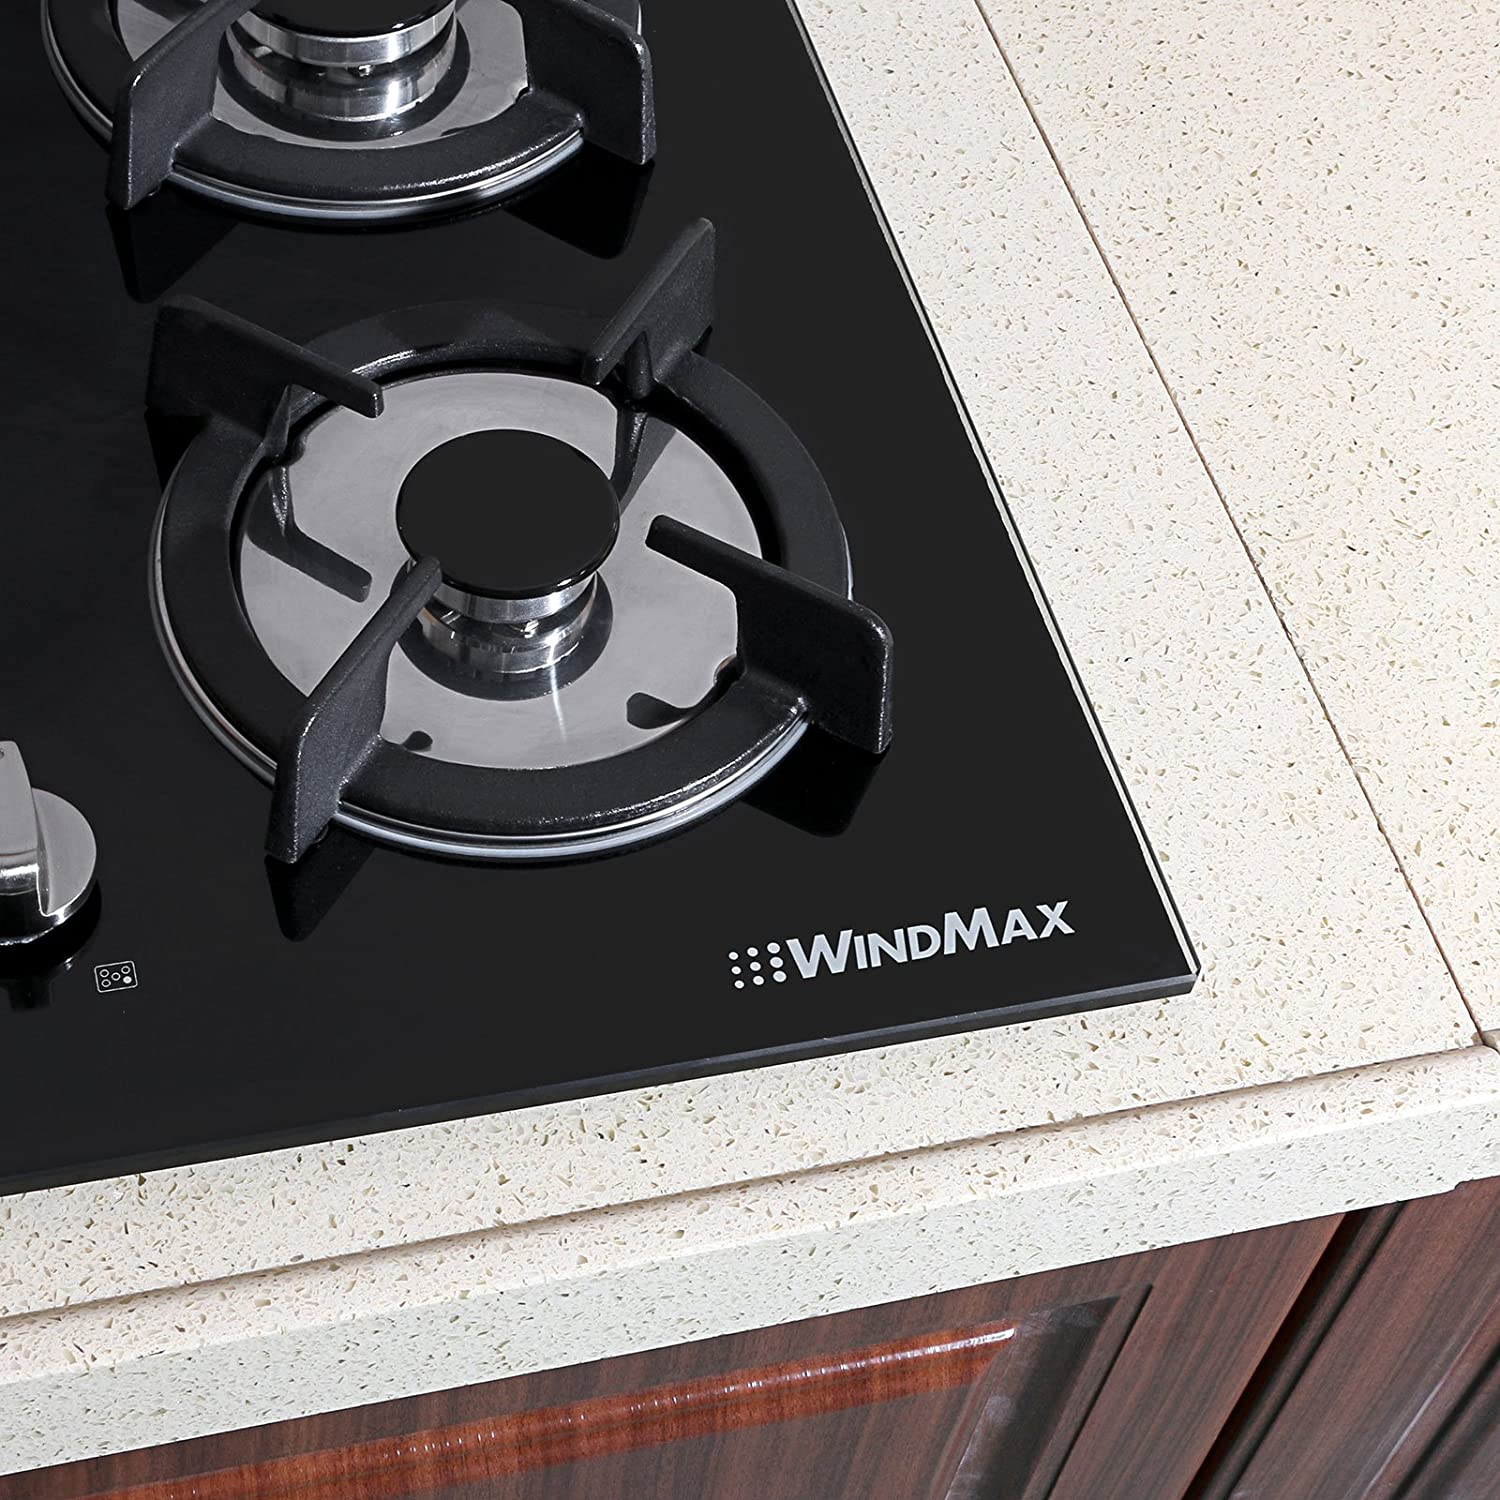 !! ON SALE NOW!! 30 Fashion Black Tempered Glass Built-in Kitchen Natural Gas 5 Burner Gas Hob CookTop